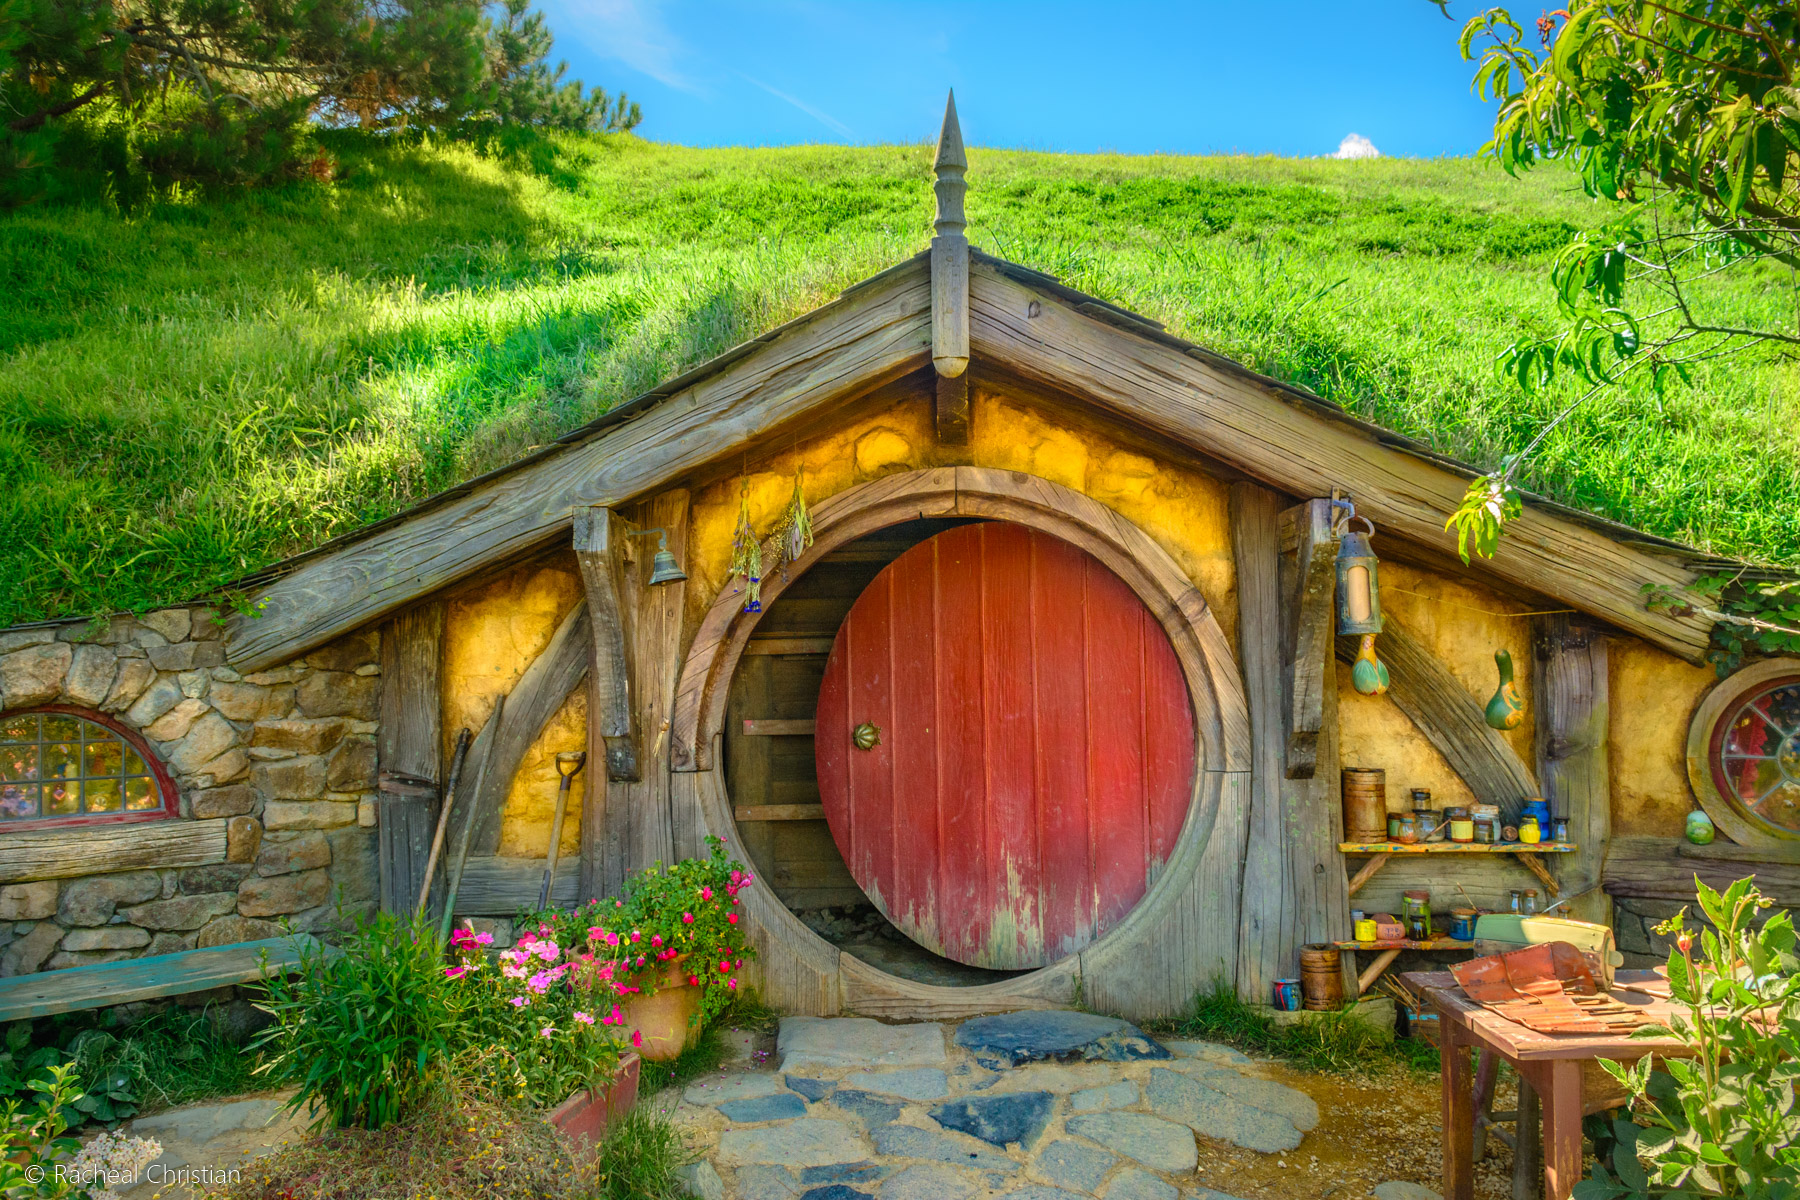 Photographing The Hobbiton Movie Set